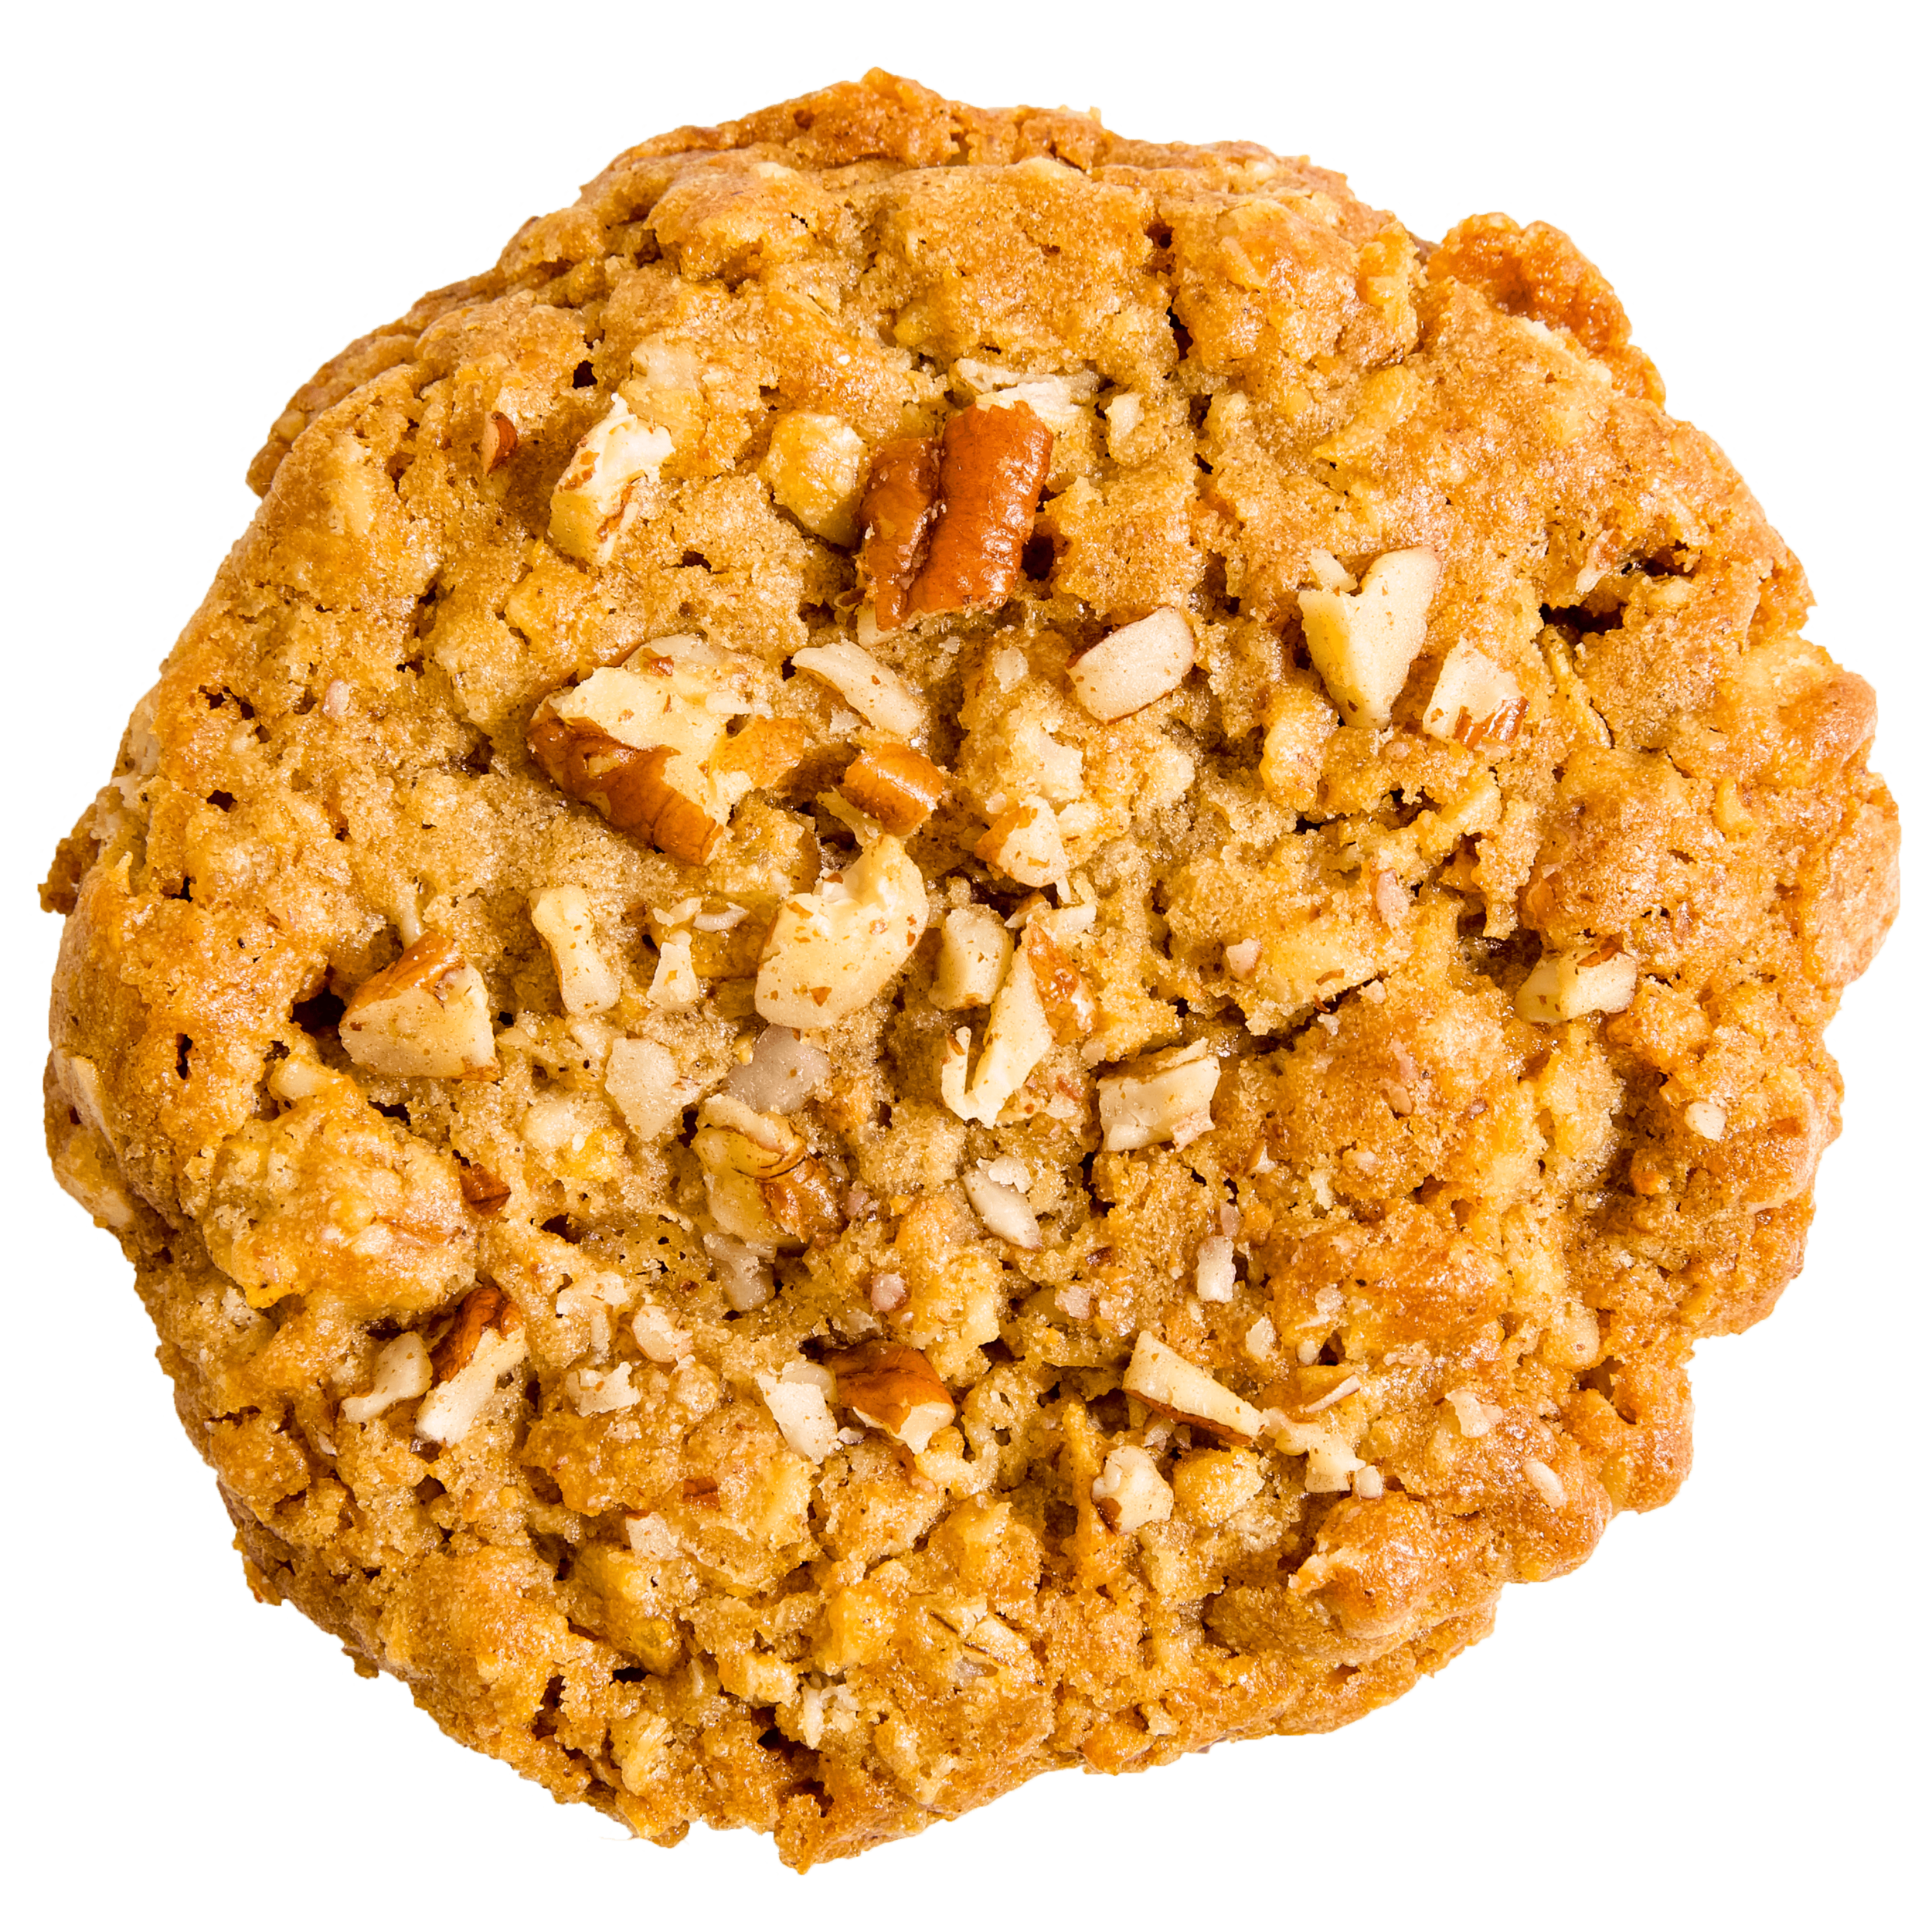 Classic oatmeal cookie topped with pecans. It's our classic oatmeal. Just nuttier.